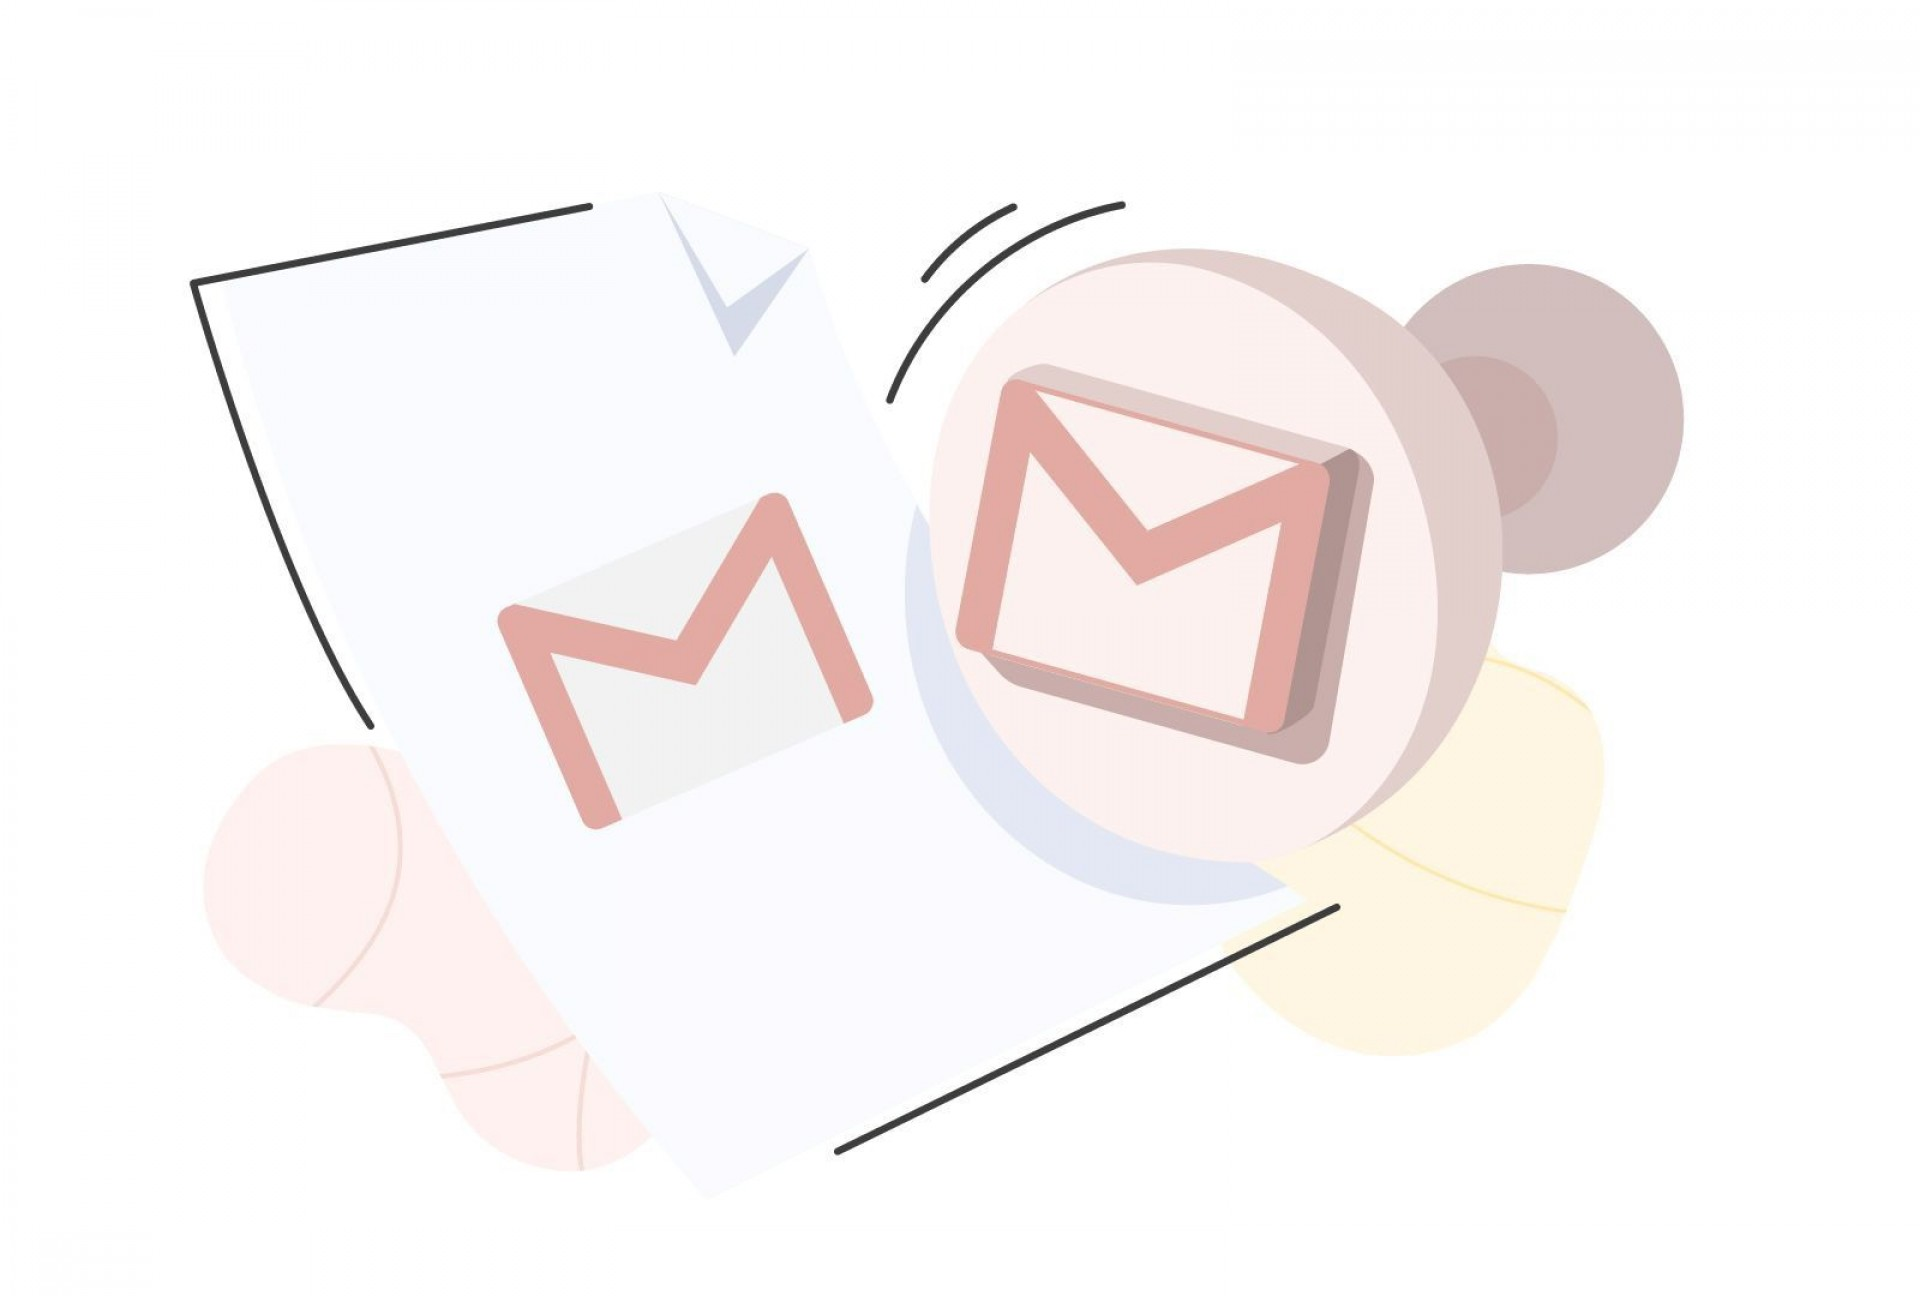 005 Sensational Free Email Template For Gmail High Resolution  Signature1920